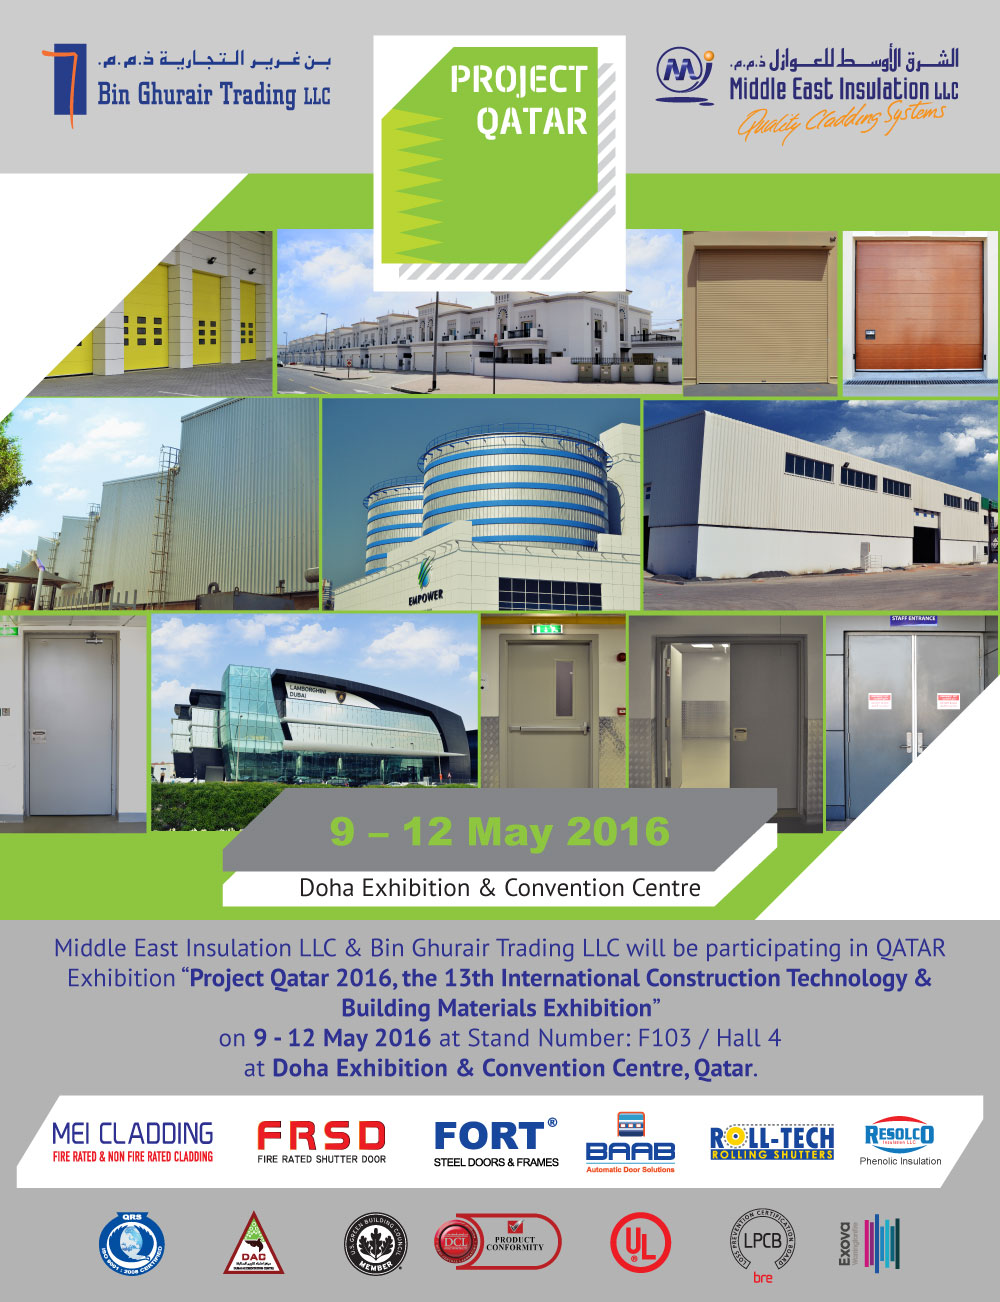 Exhibition Stand Company In Qatar : Pages middle east insulation llc quality cladding